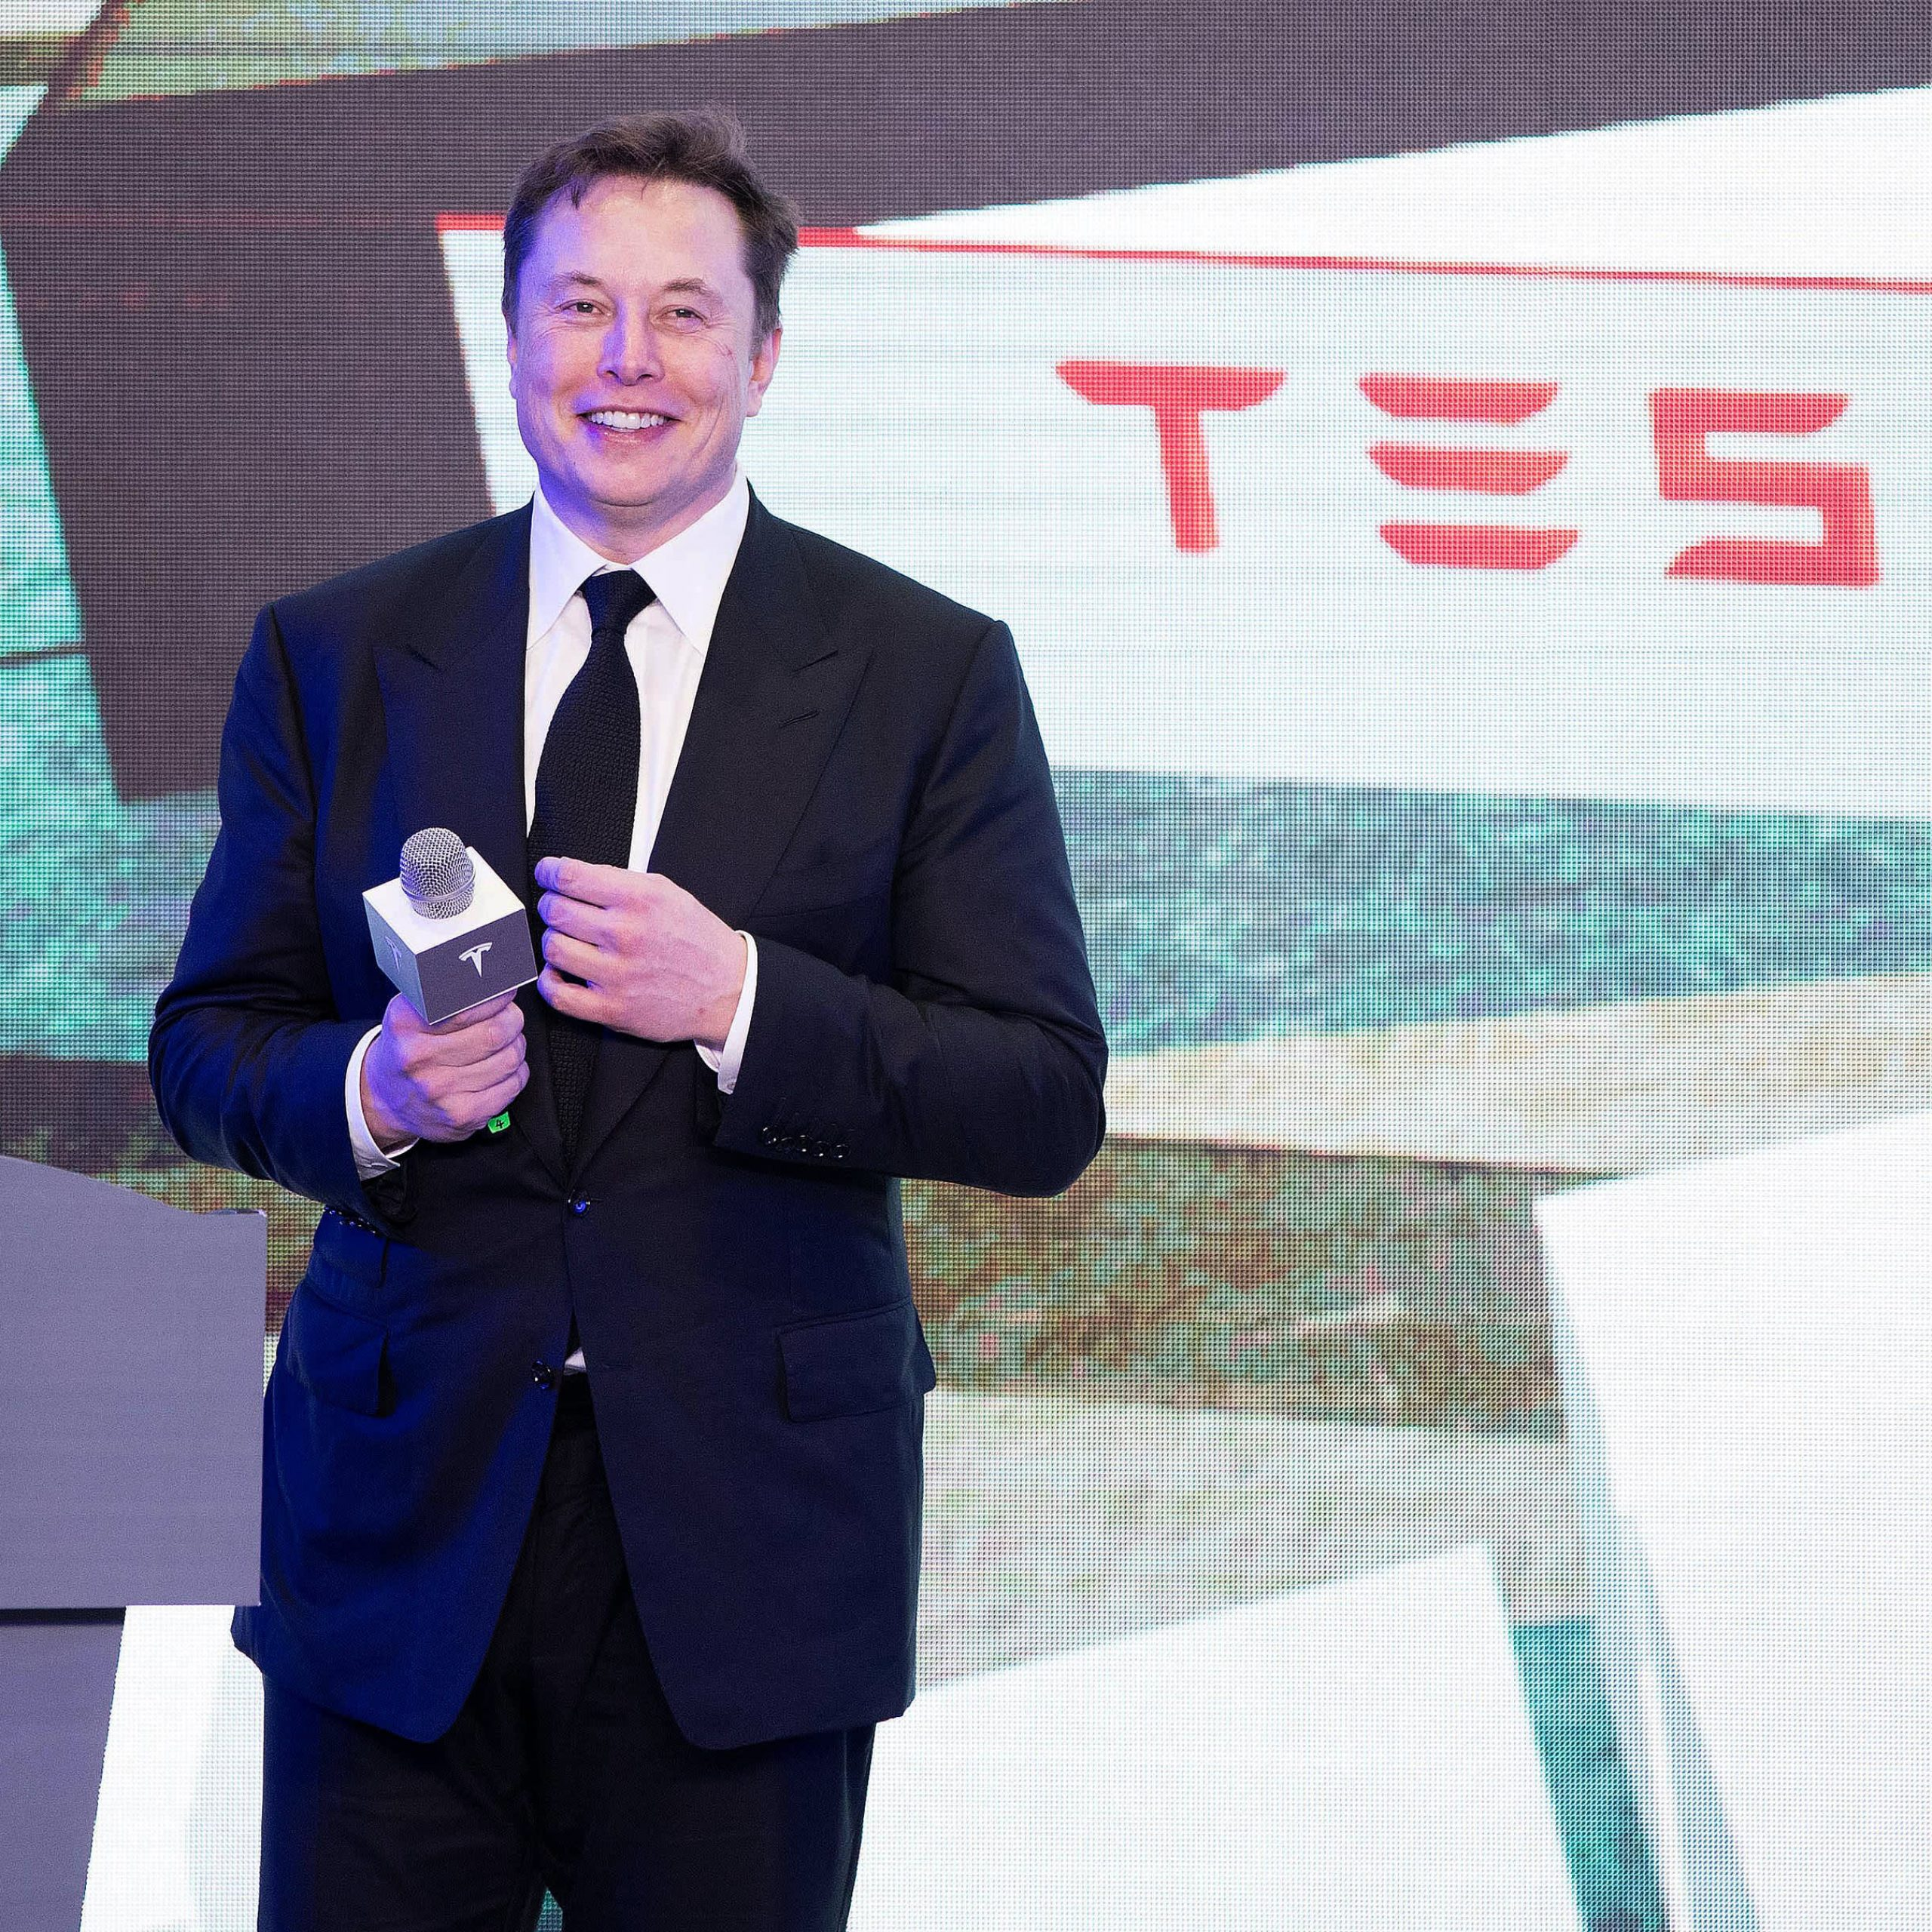 Tesla Company invests in the bitcoin